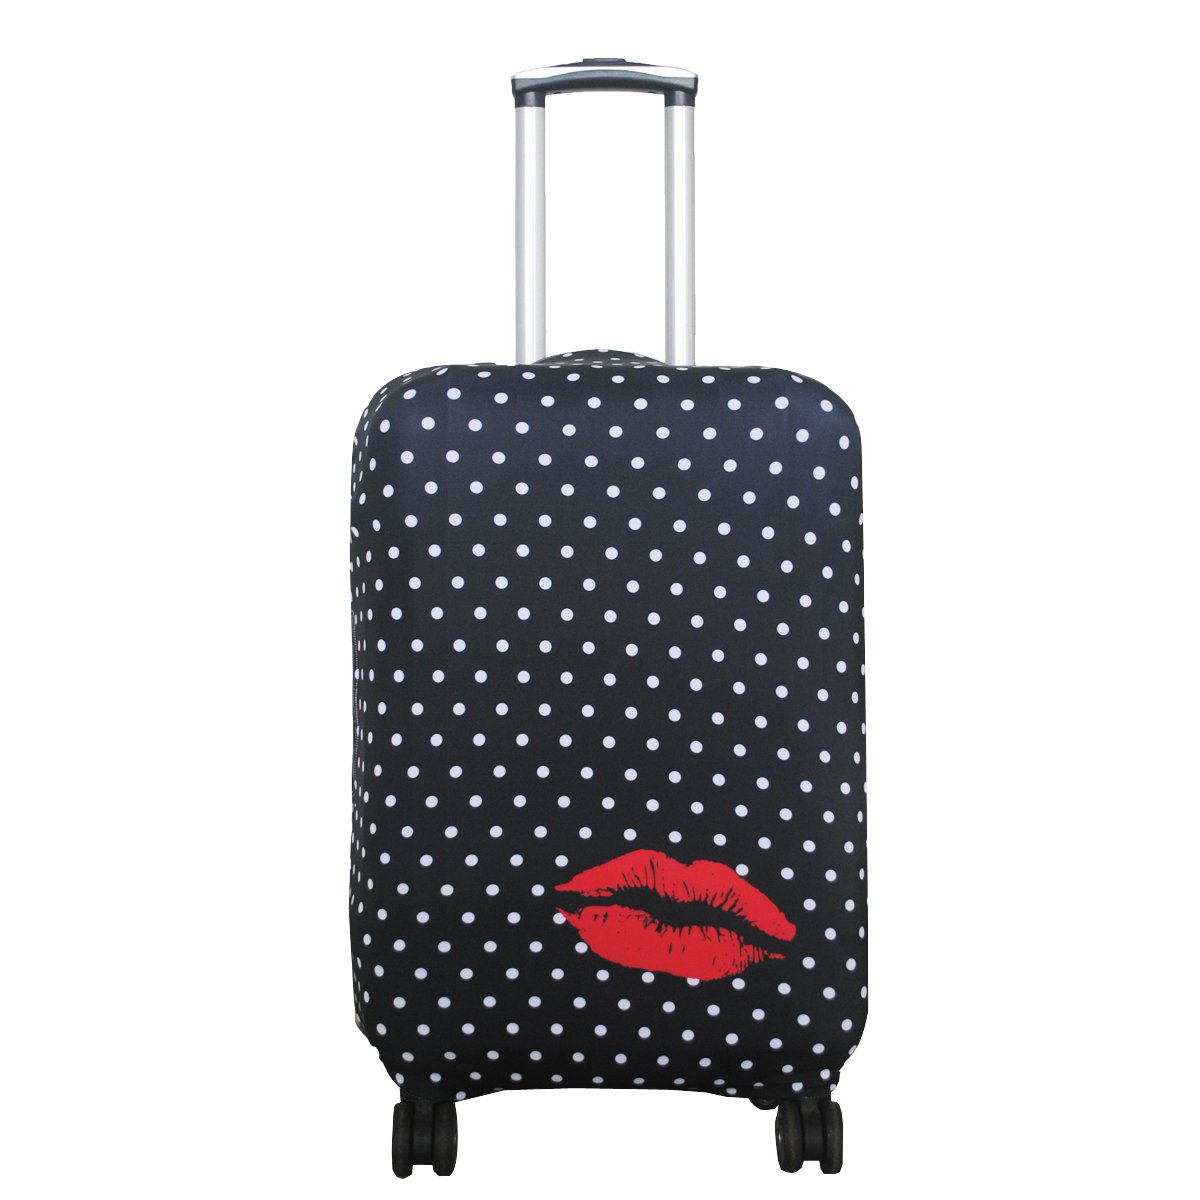 Explore Land Travel Luggage Cover Suitcase Protector Fits 18-32 Inch Luggage (Polkadot, L(27-30 inch Luggage))